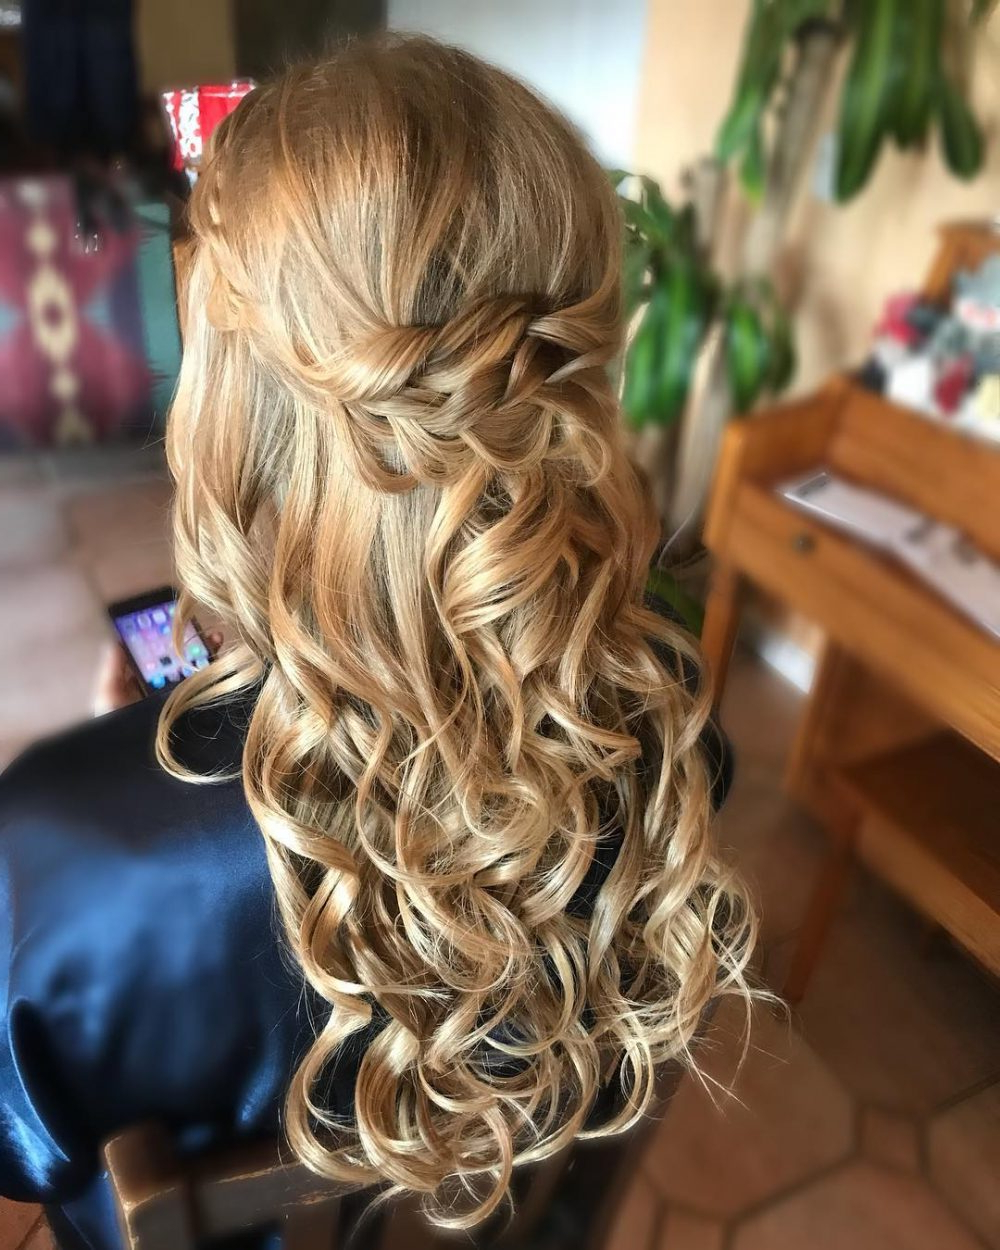 Well Known Braided Wedding Hairstyles With Subtle Waves Intended For 24 Gorgeous Wedding Hairstyles For Long Hair In 2019 (Gallery 14 of 20)